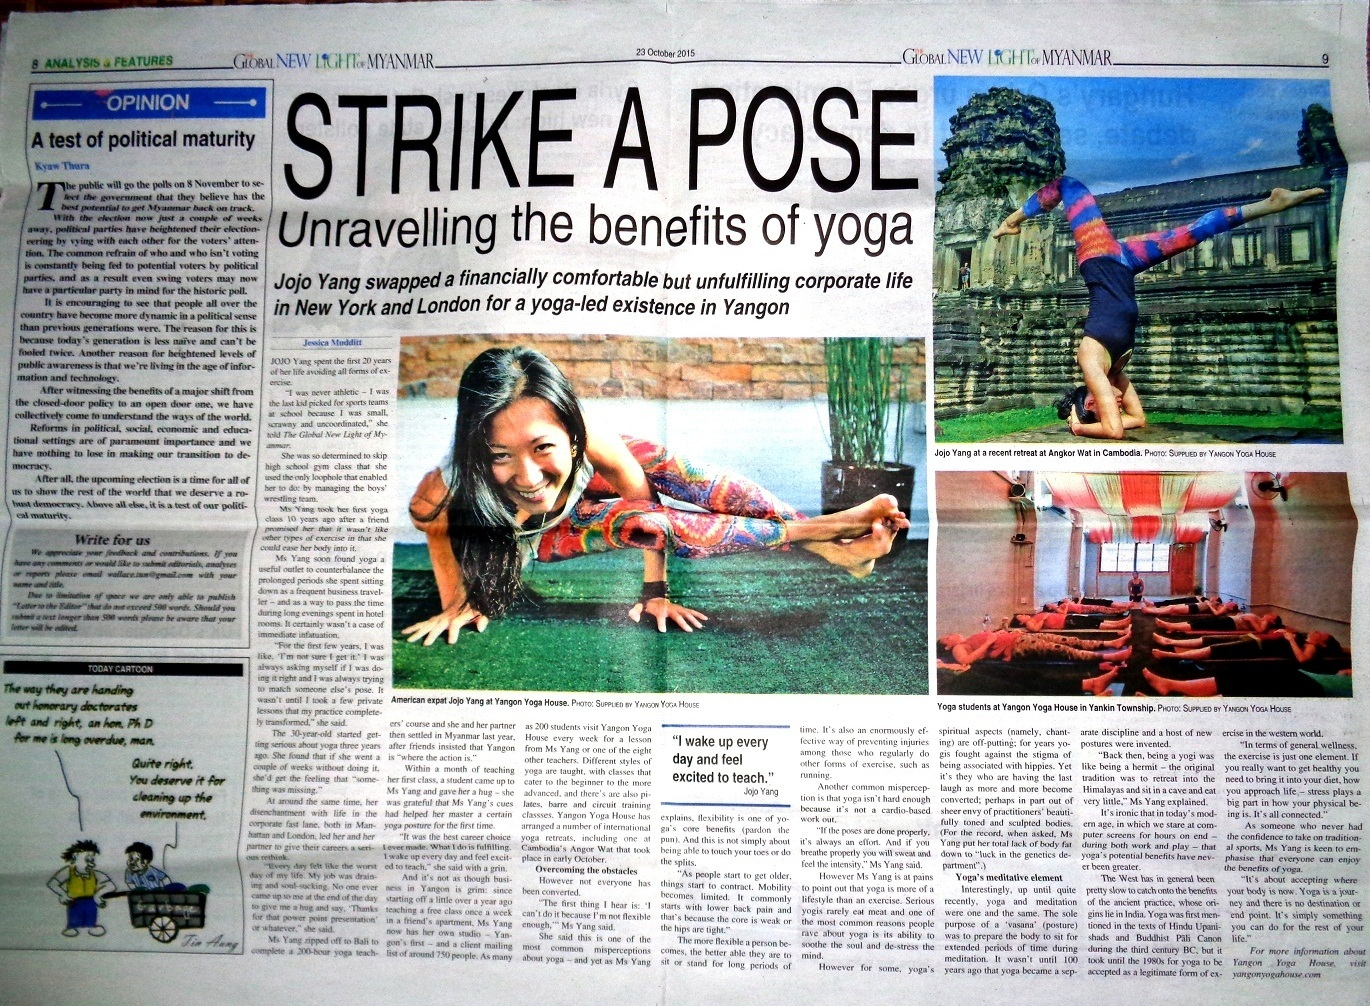 As featured in The Global New Light of Myanmar - the first spread ever to grace its pages!